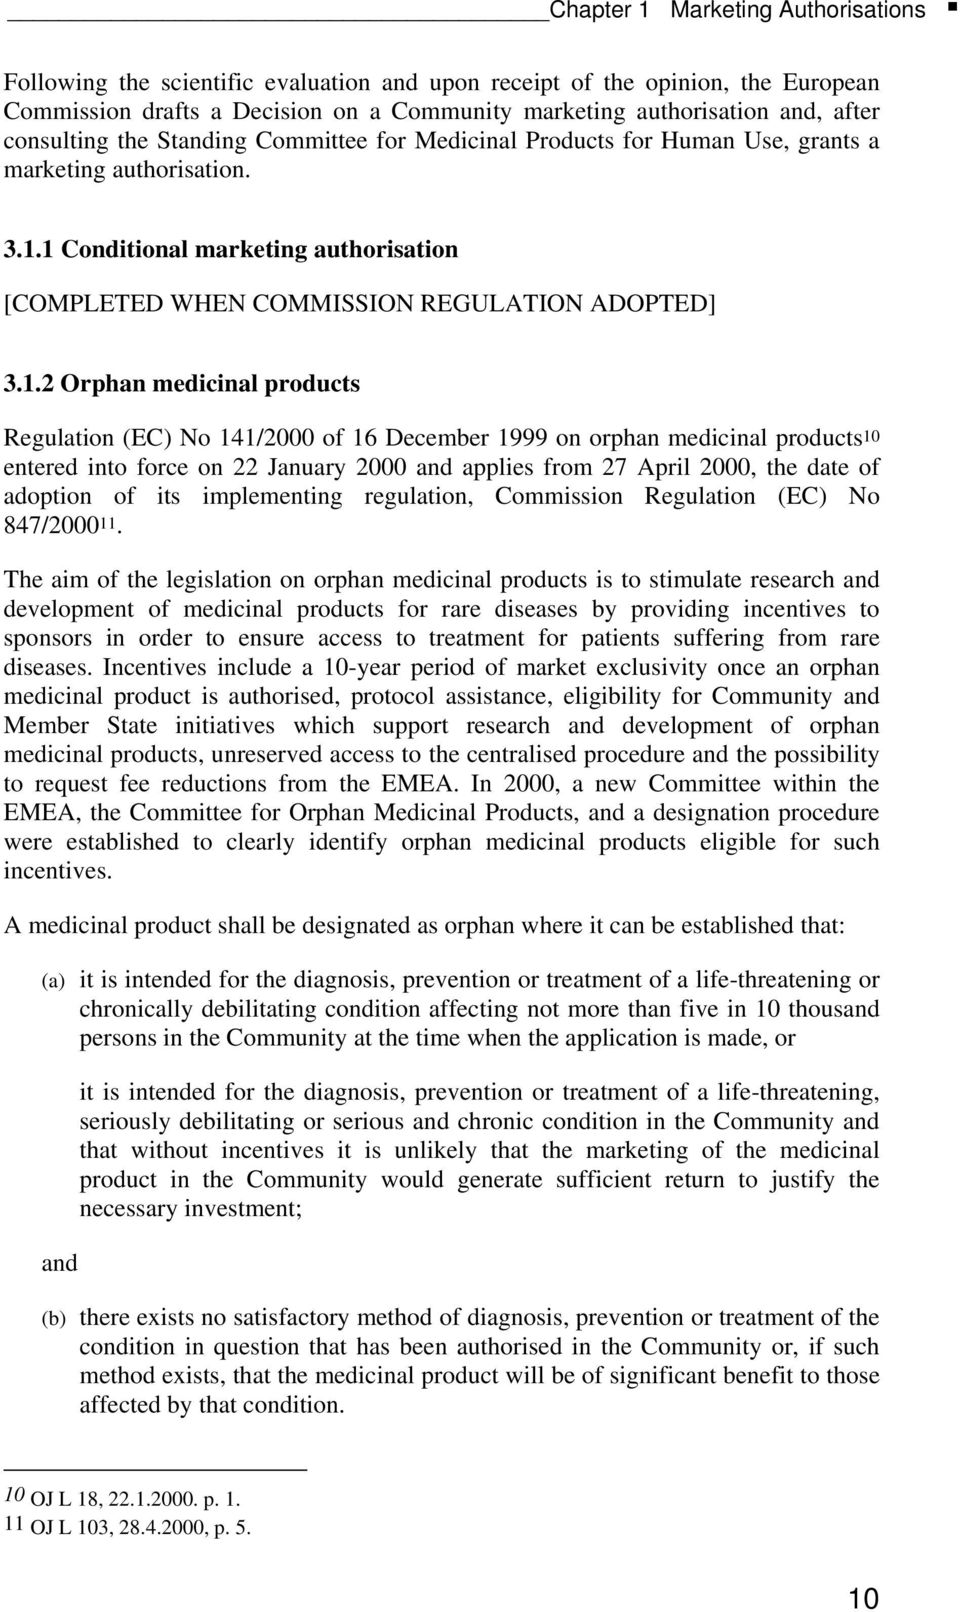 1 Conditional marketing authorisation [COMPLETED WHEN COMMISSION REGULATION ADOPTED] 3.1.2 Orphan medicinal products Regulation (EC) No 141/2000 of 16 December 1999 on orphan medicinal products10